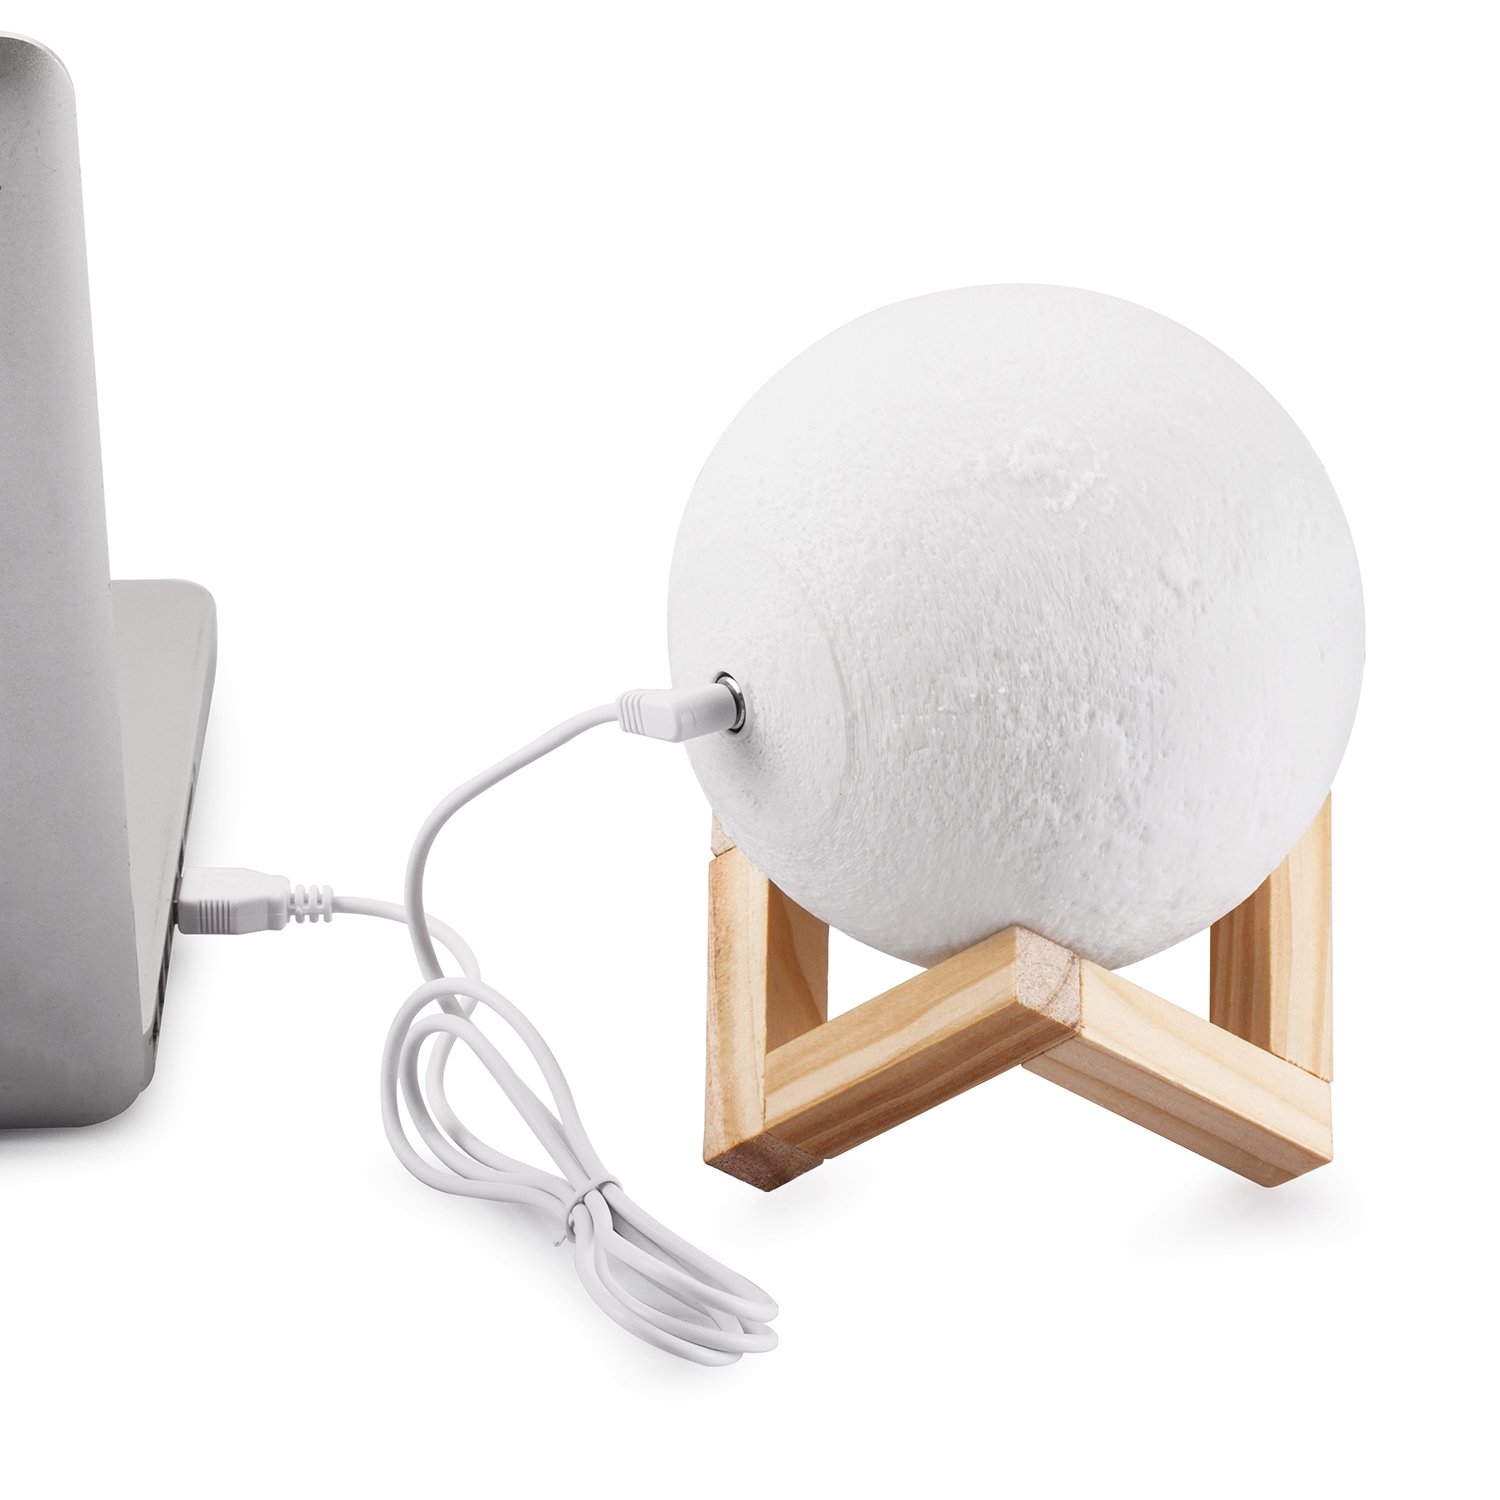 Gahaya Moon Lamp, Touch Control, Stepless Dimmable, PLA material, USB Recharge, 7.1